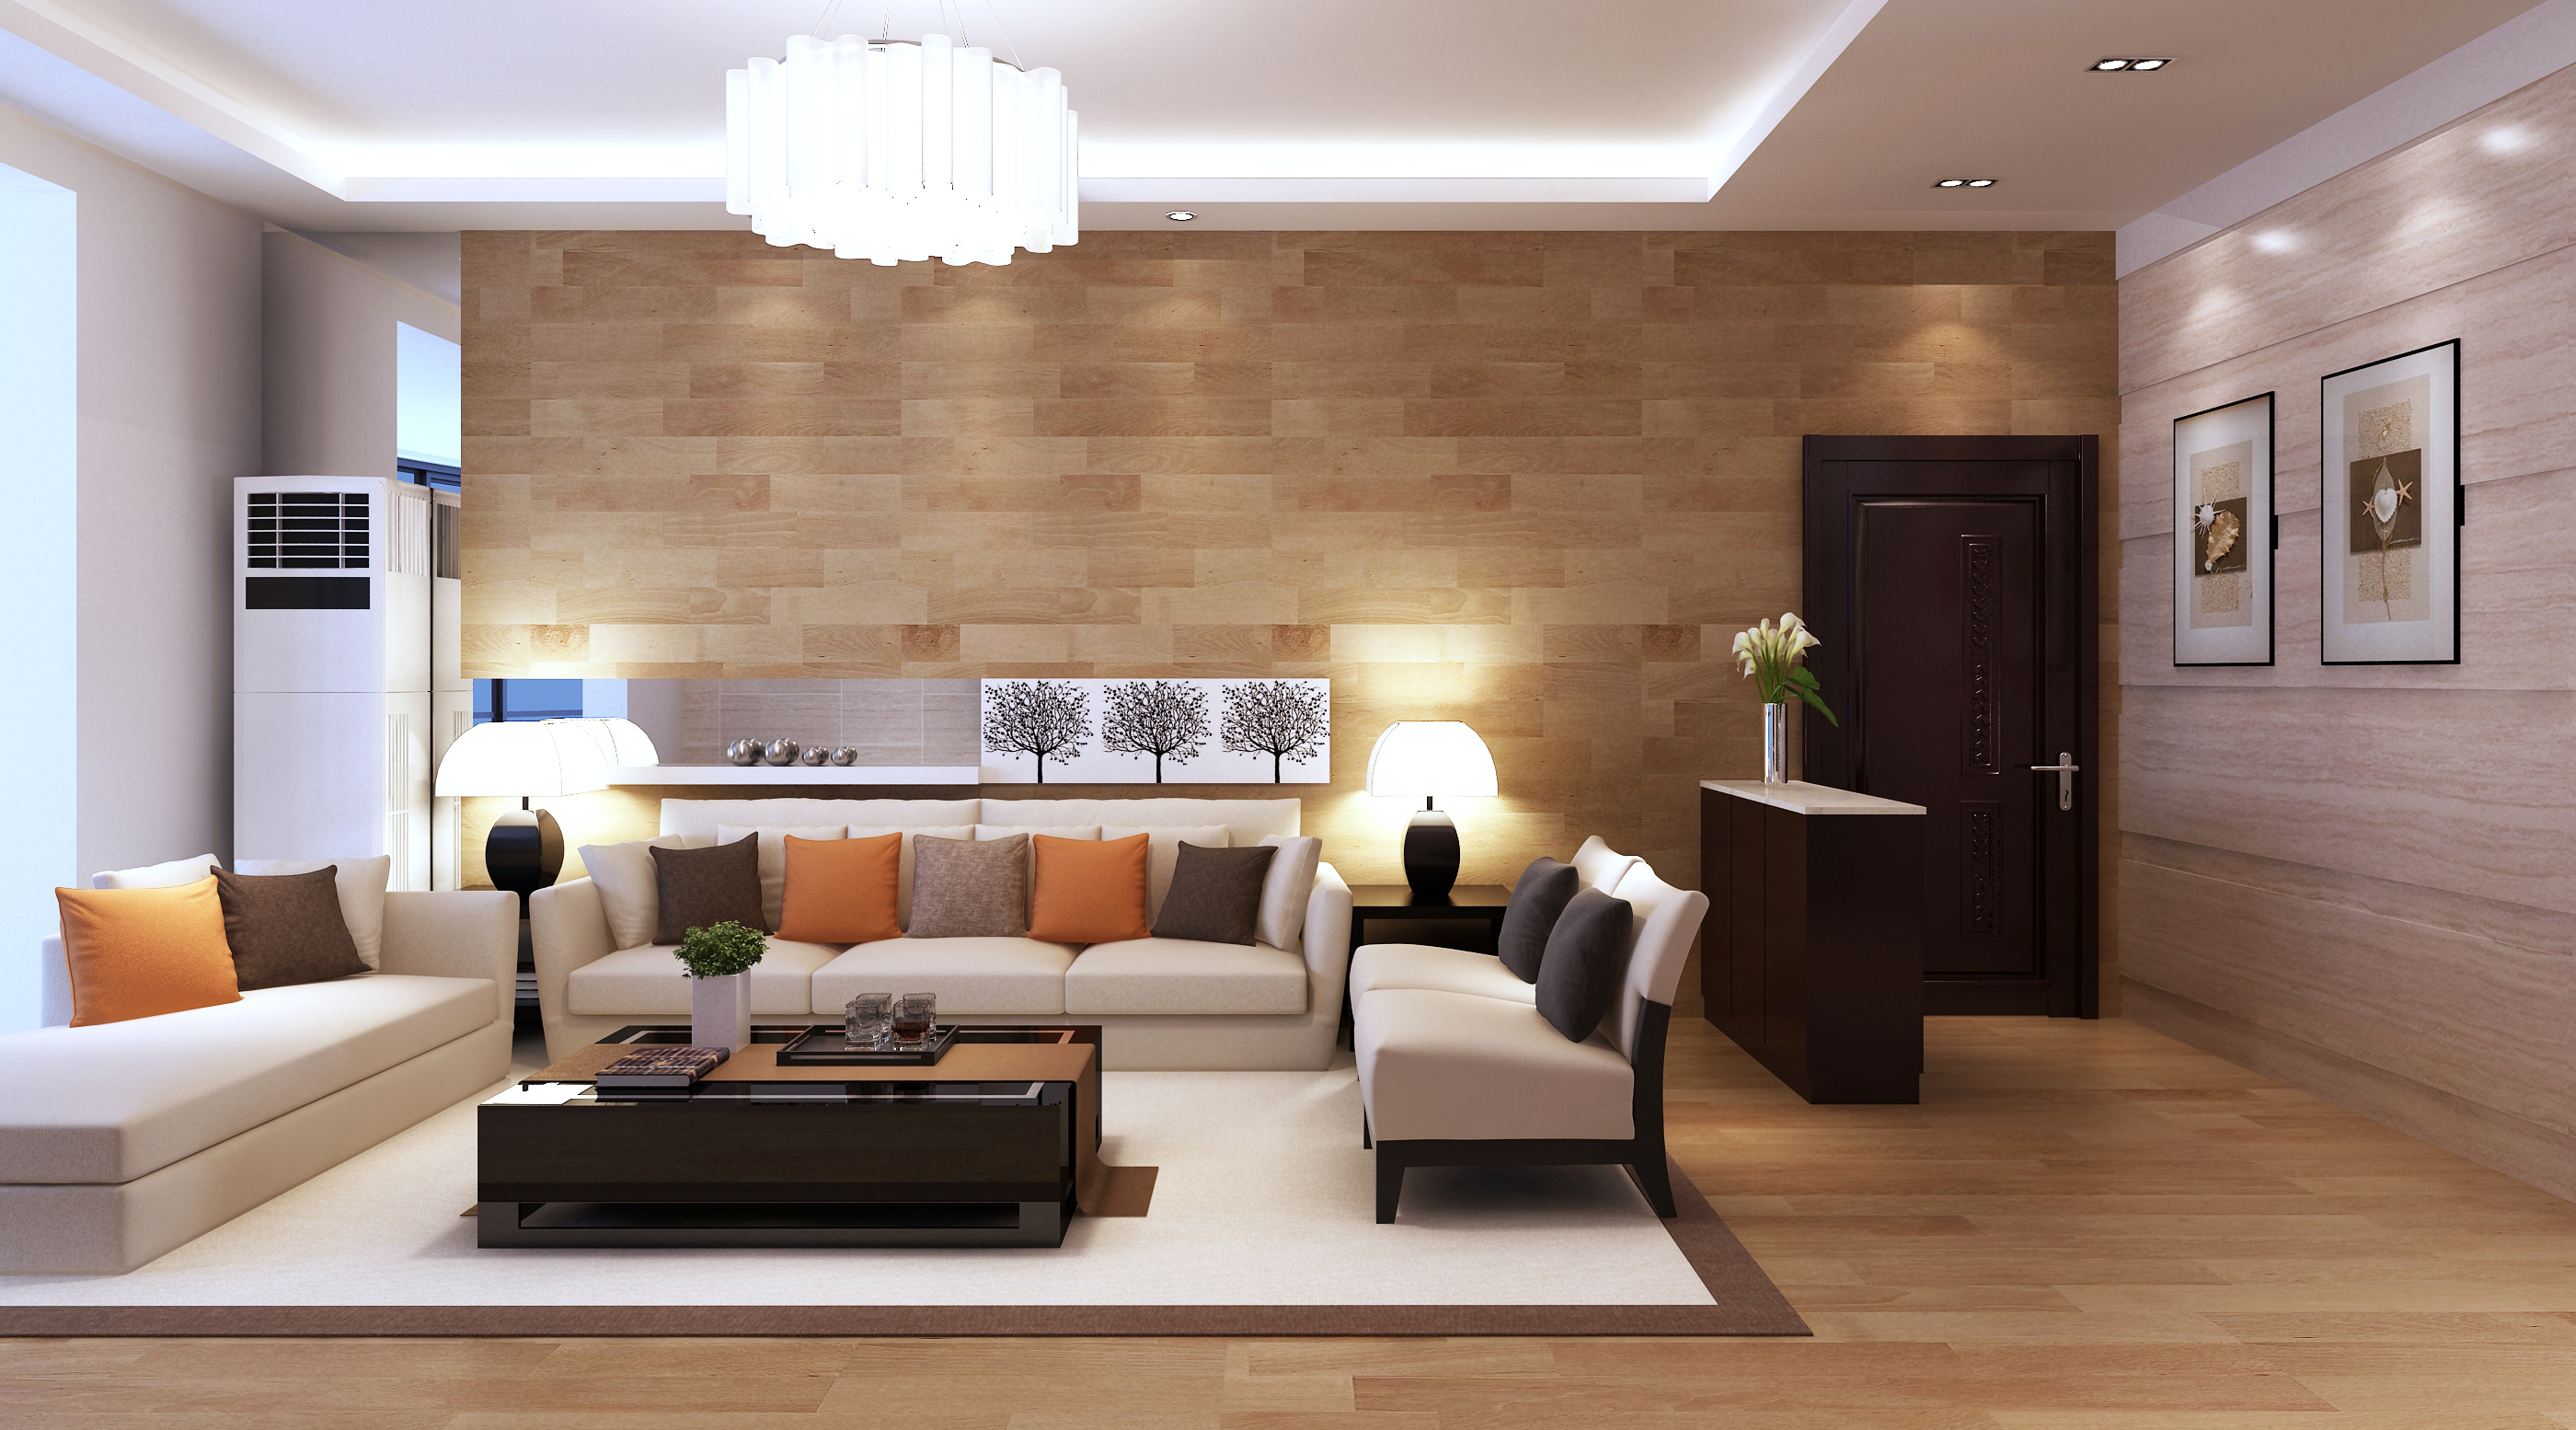 Model Living Room Fair 3D Model Modern Living Room Architectural  Cgtrader Design Ideas